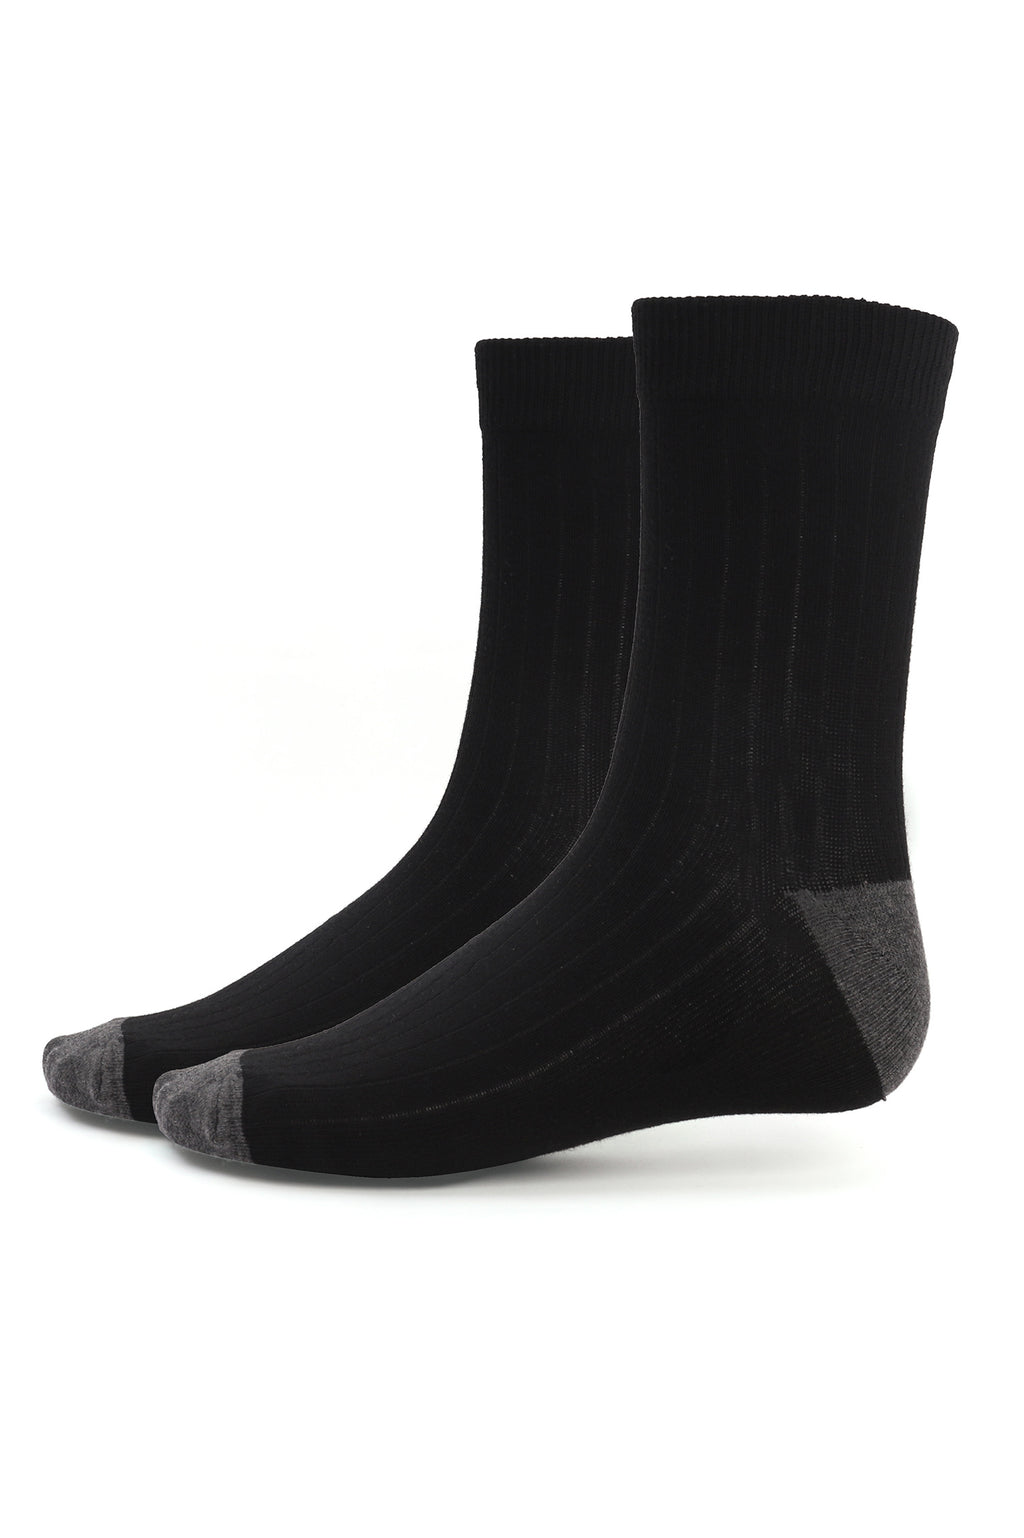 COMBO SOCKS-BLACK